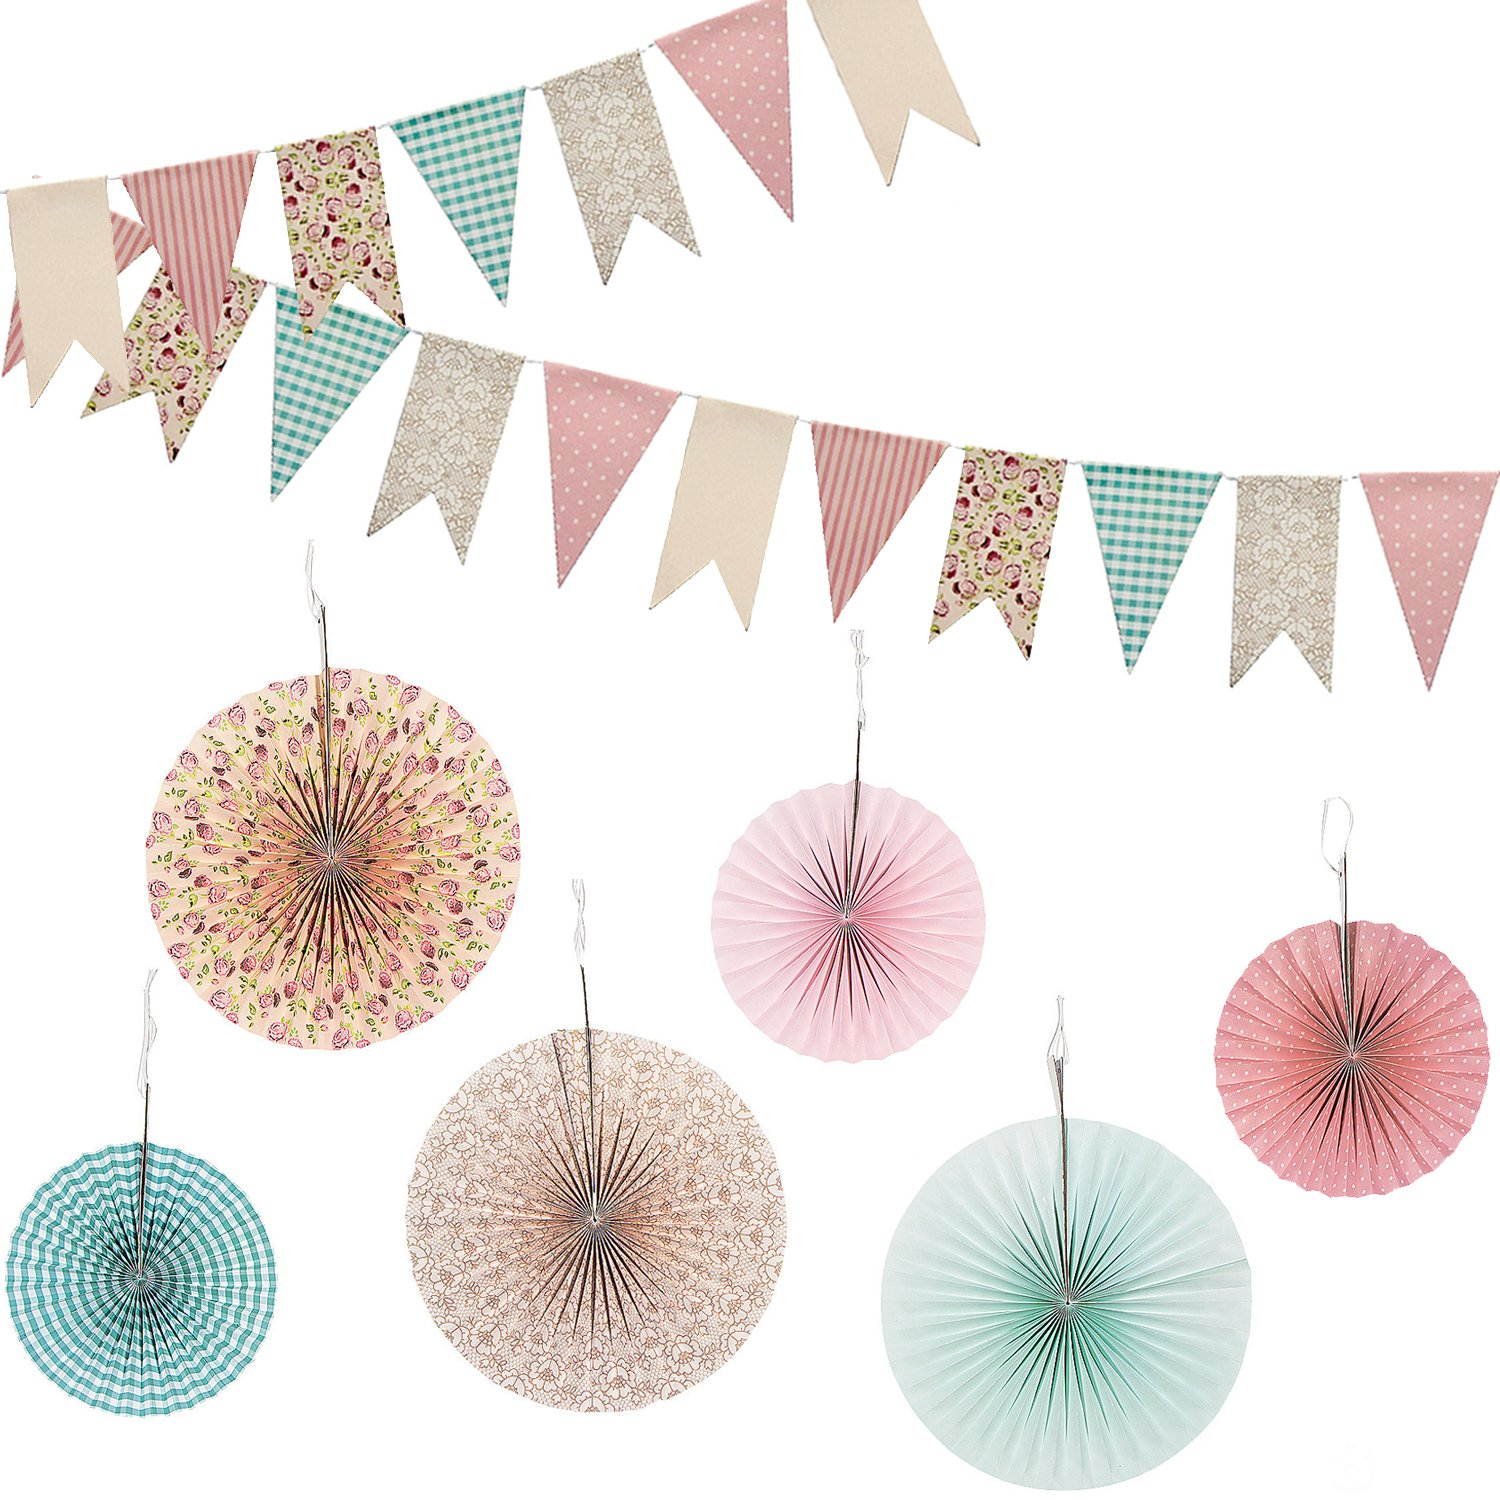 Vintage Floral Hanging Fans and Banner Decorations Decor 7 PC Pack for Wedding Tea Party or Birthday Party in multicolor multi-colored designs